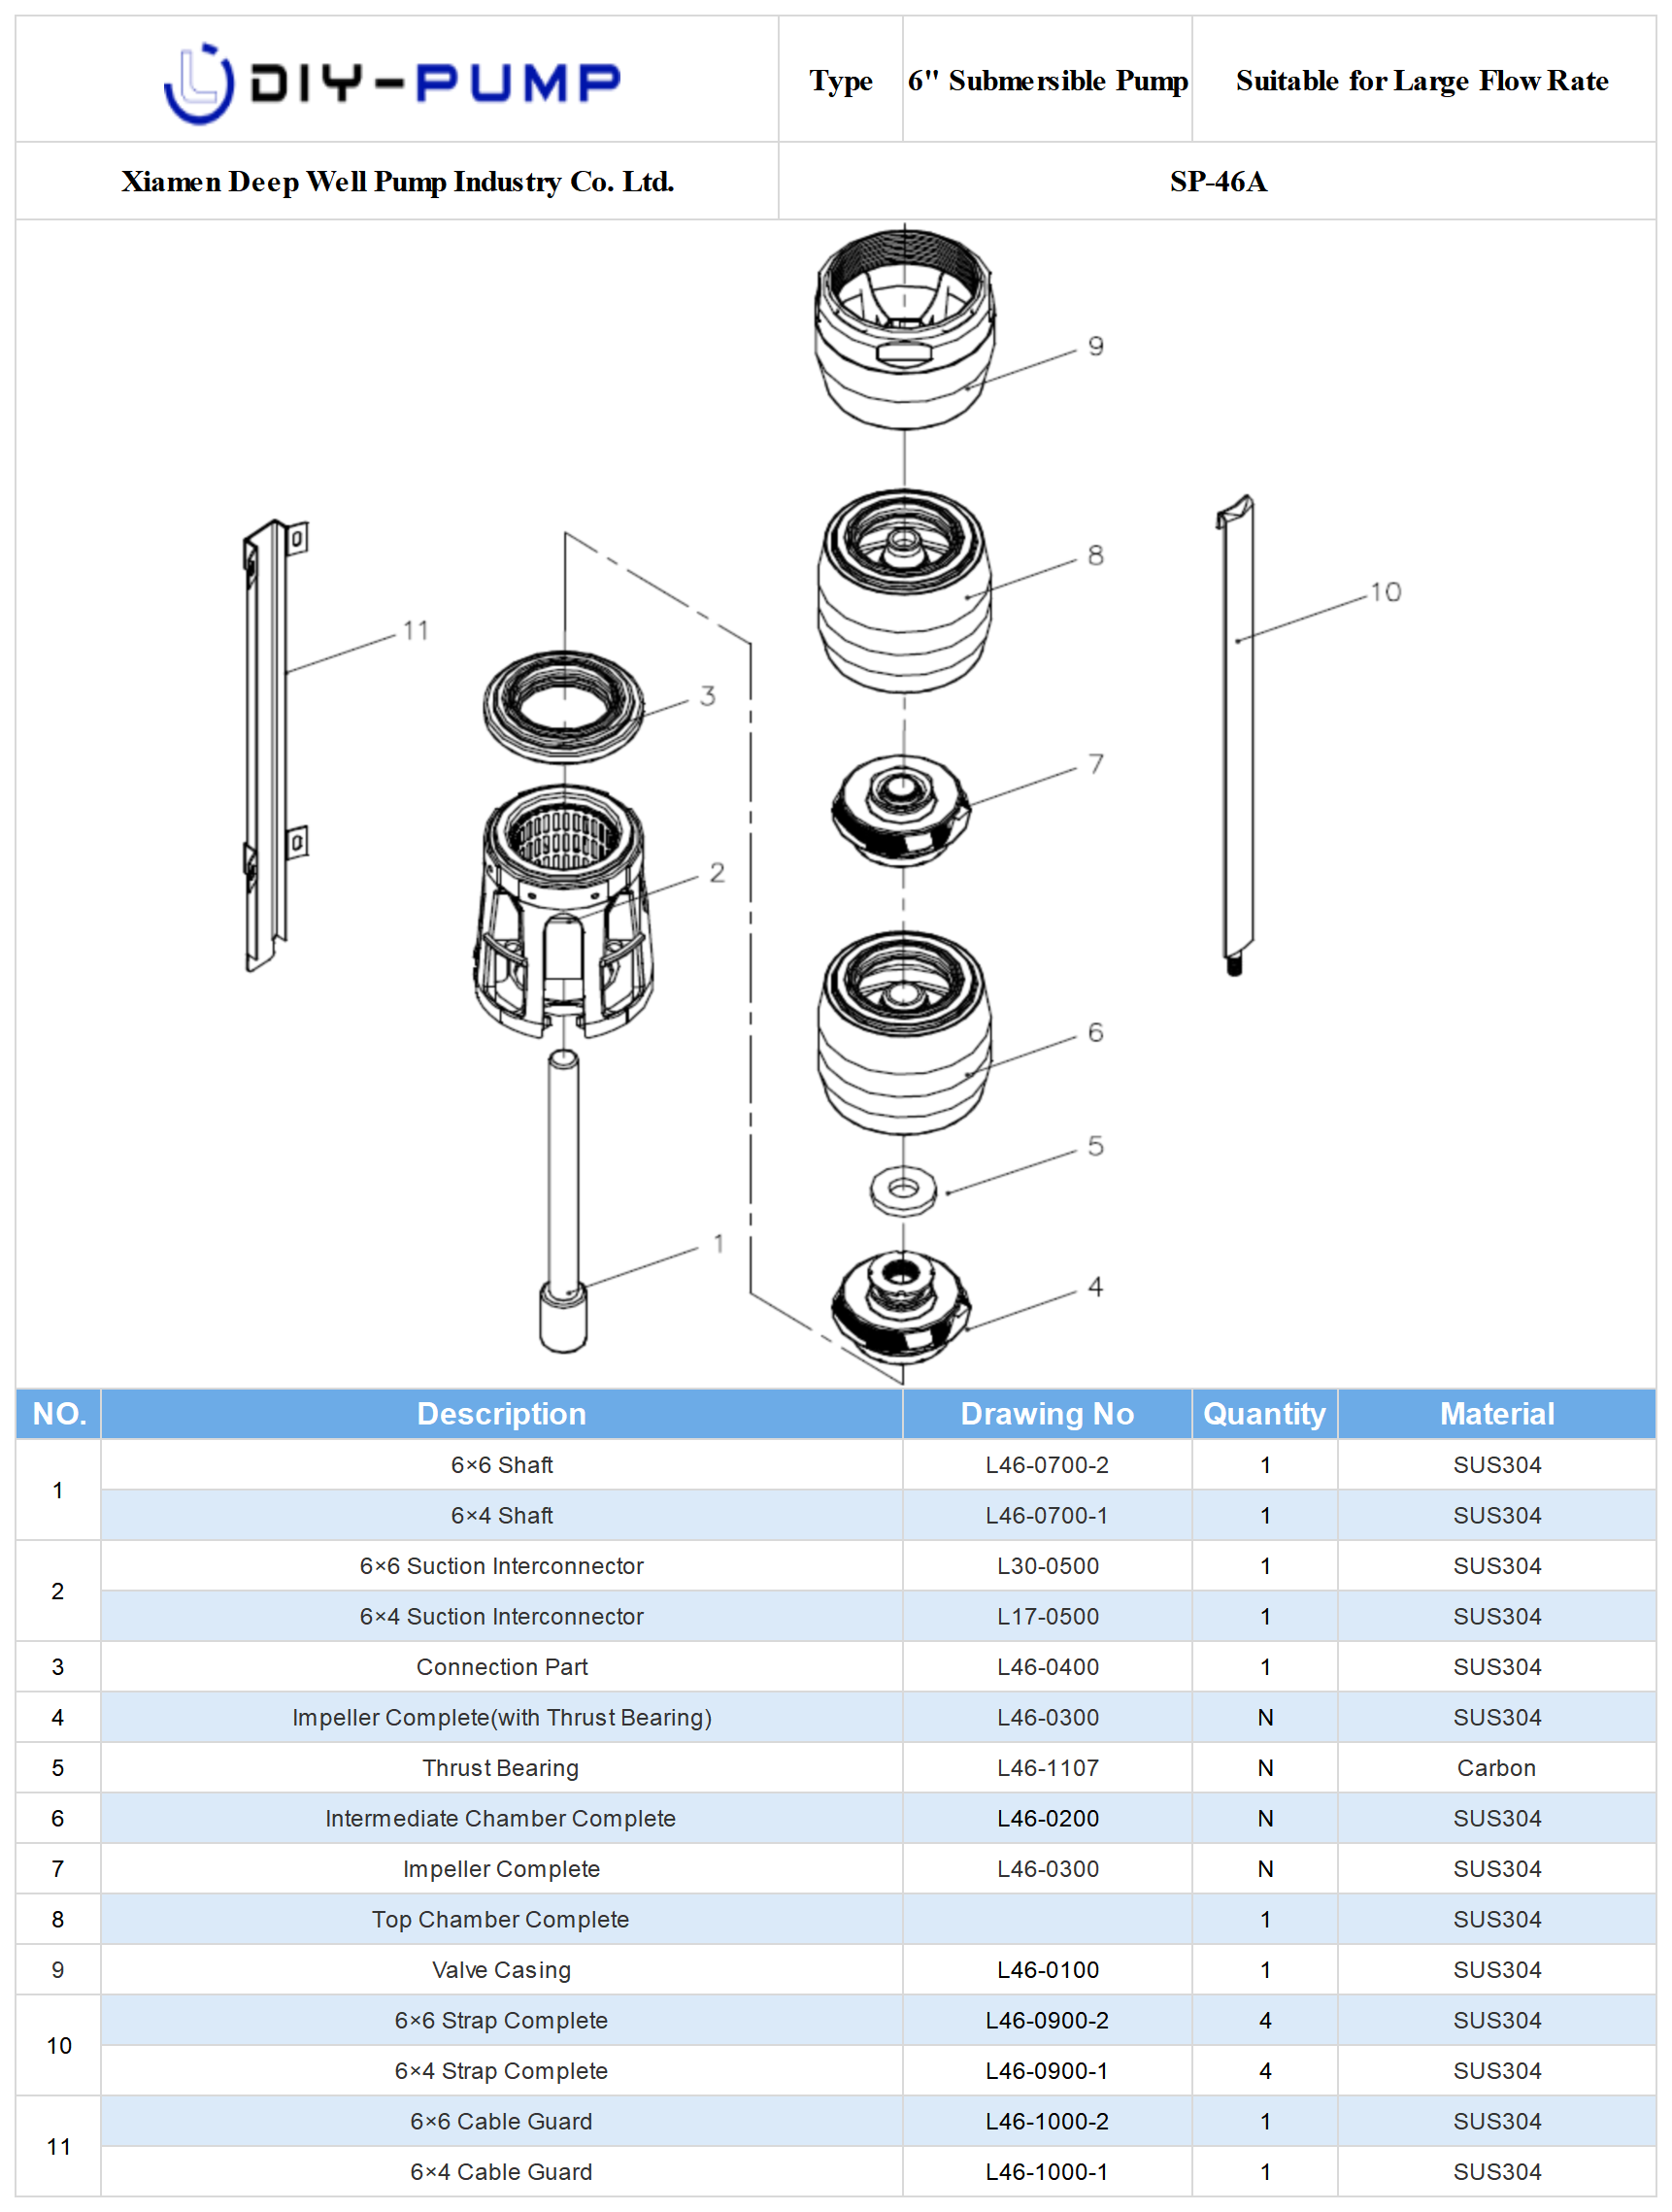 SP-46 Deep Well Submersible Pump Structure.png